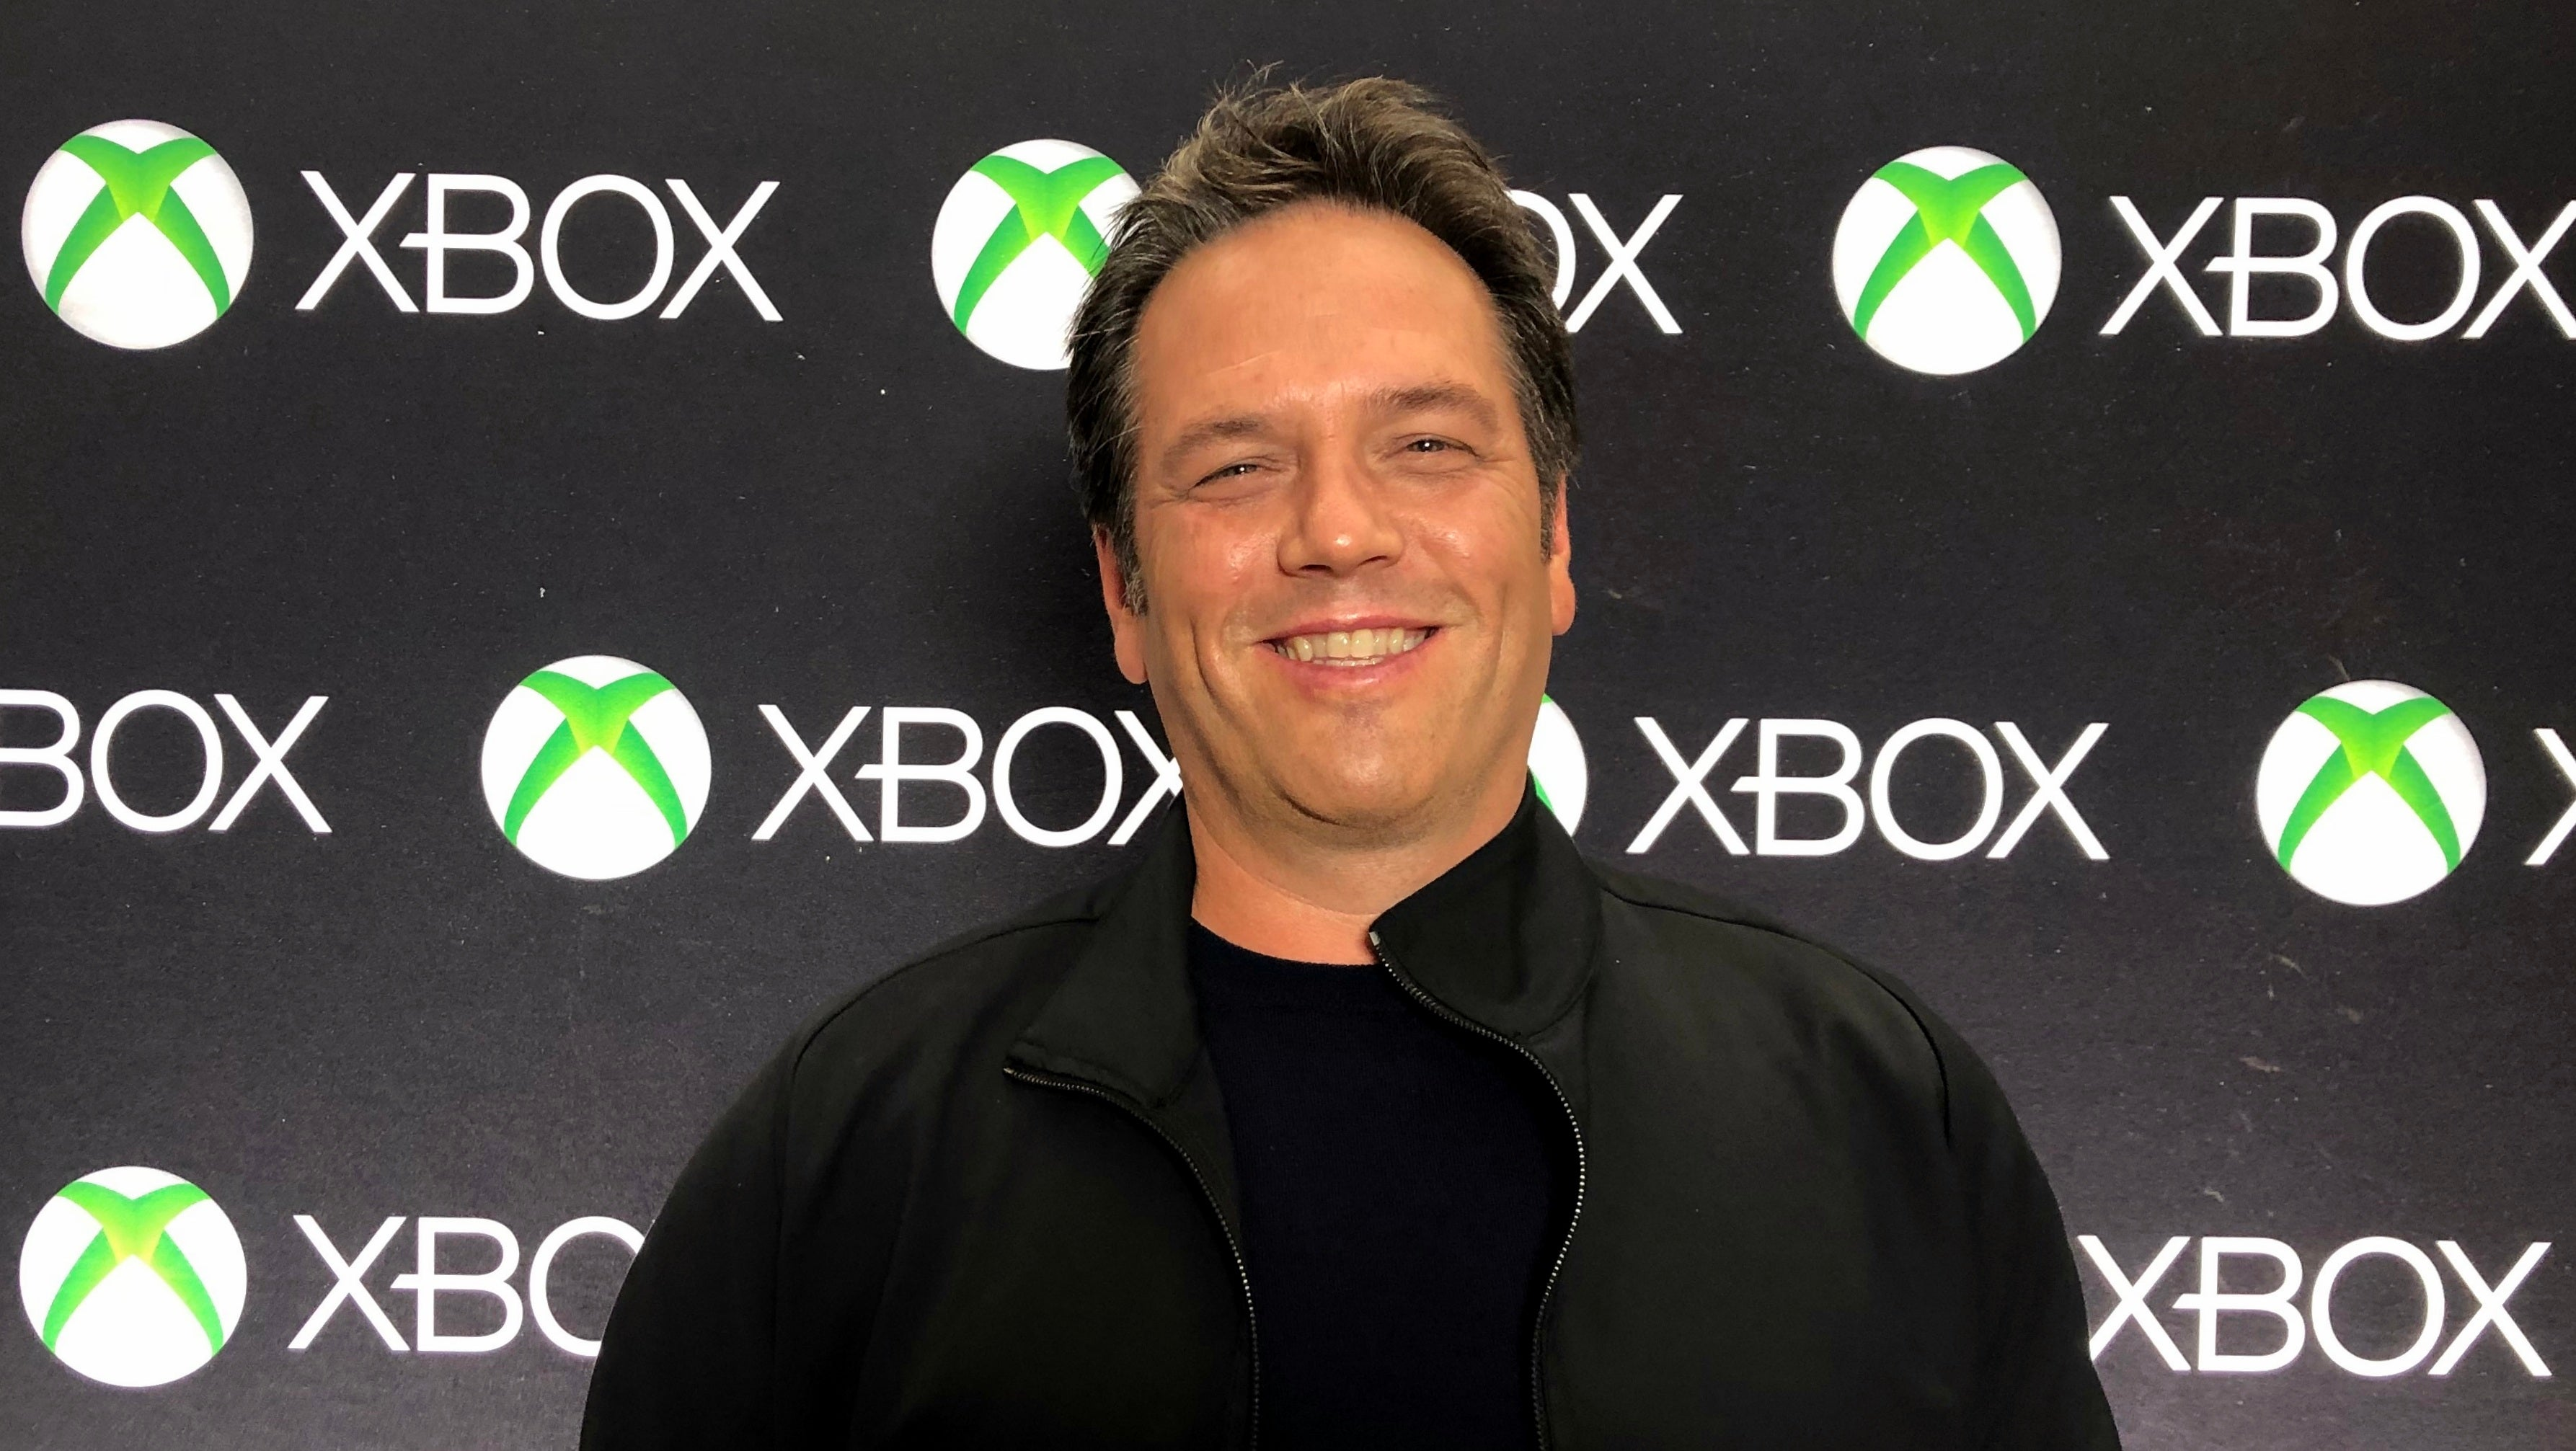 Phil Spencer On Xbox's Unusual Strategy, Working With Sony, And More